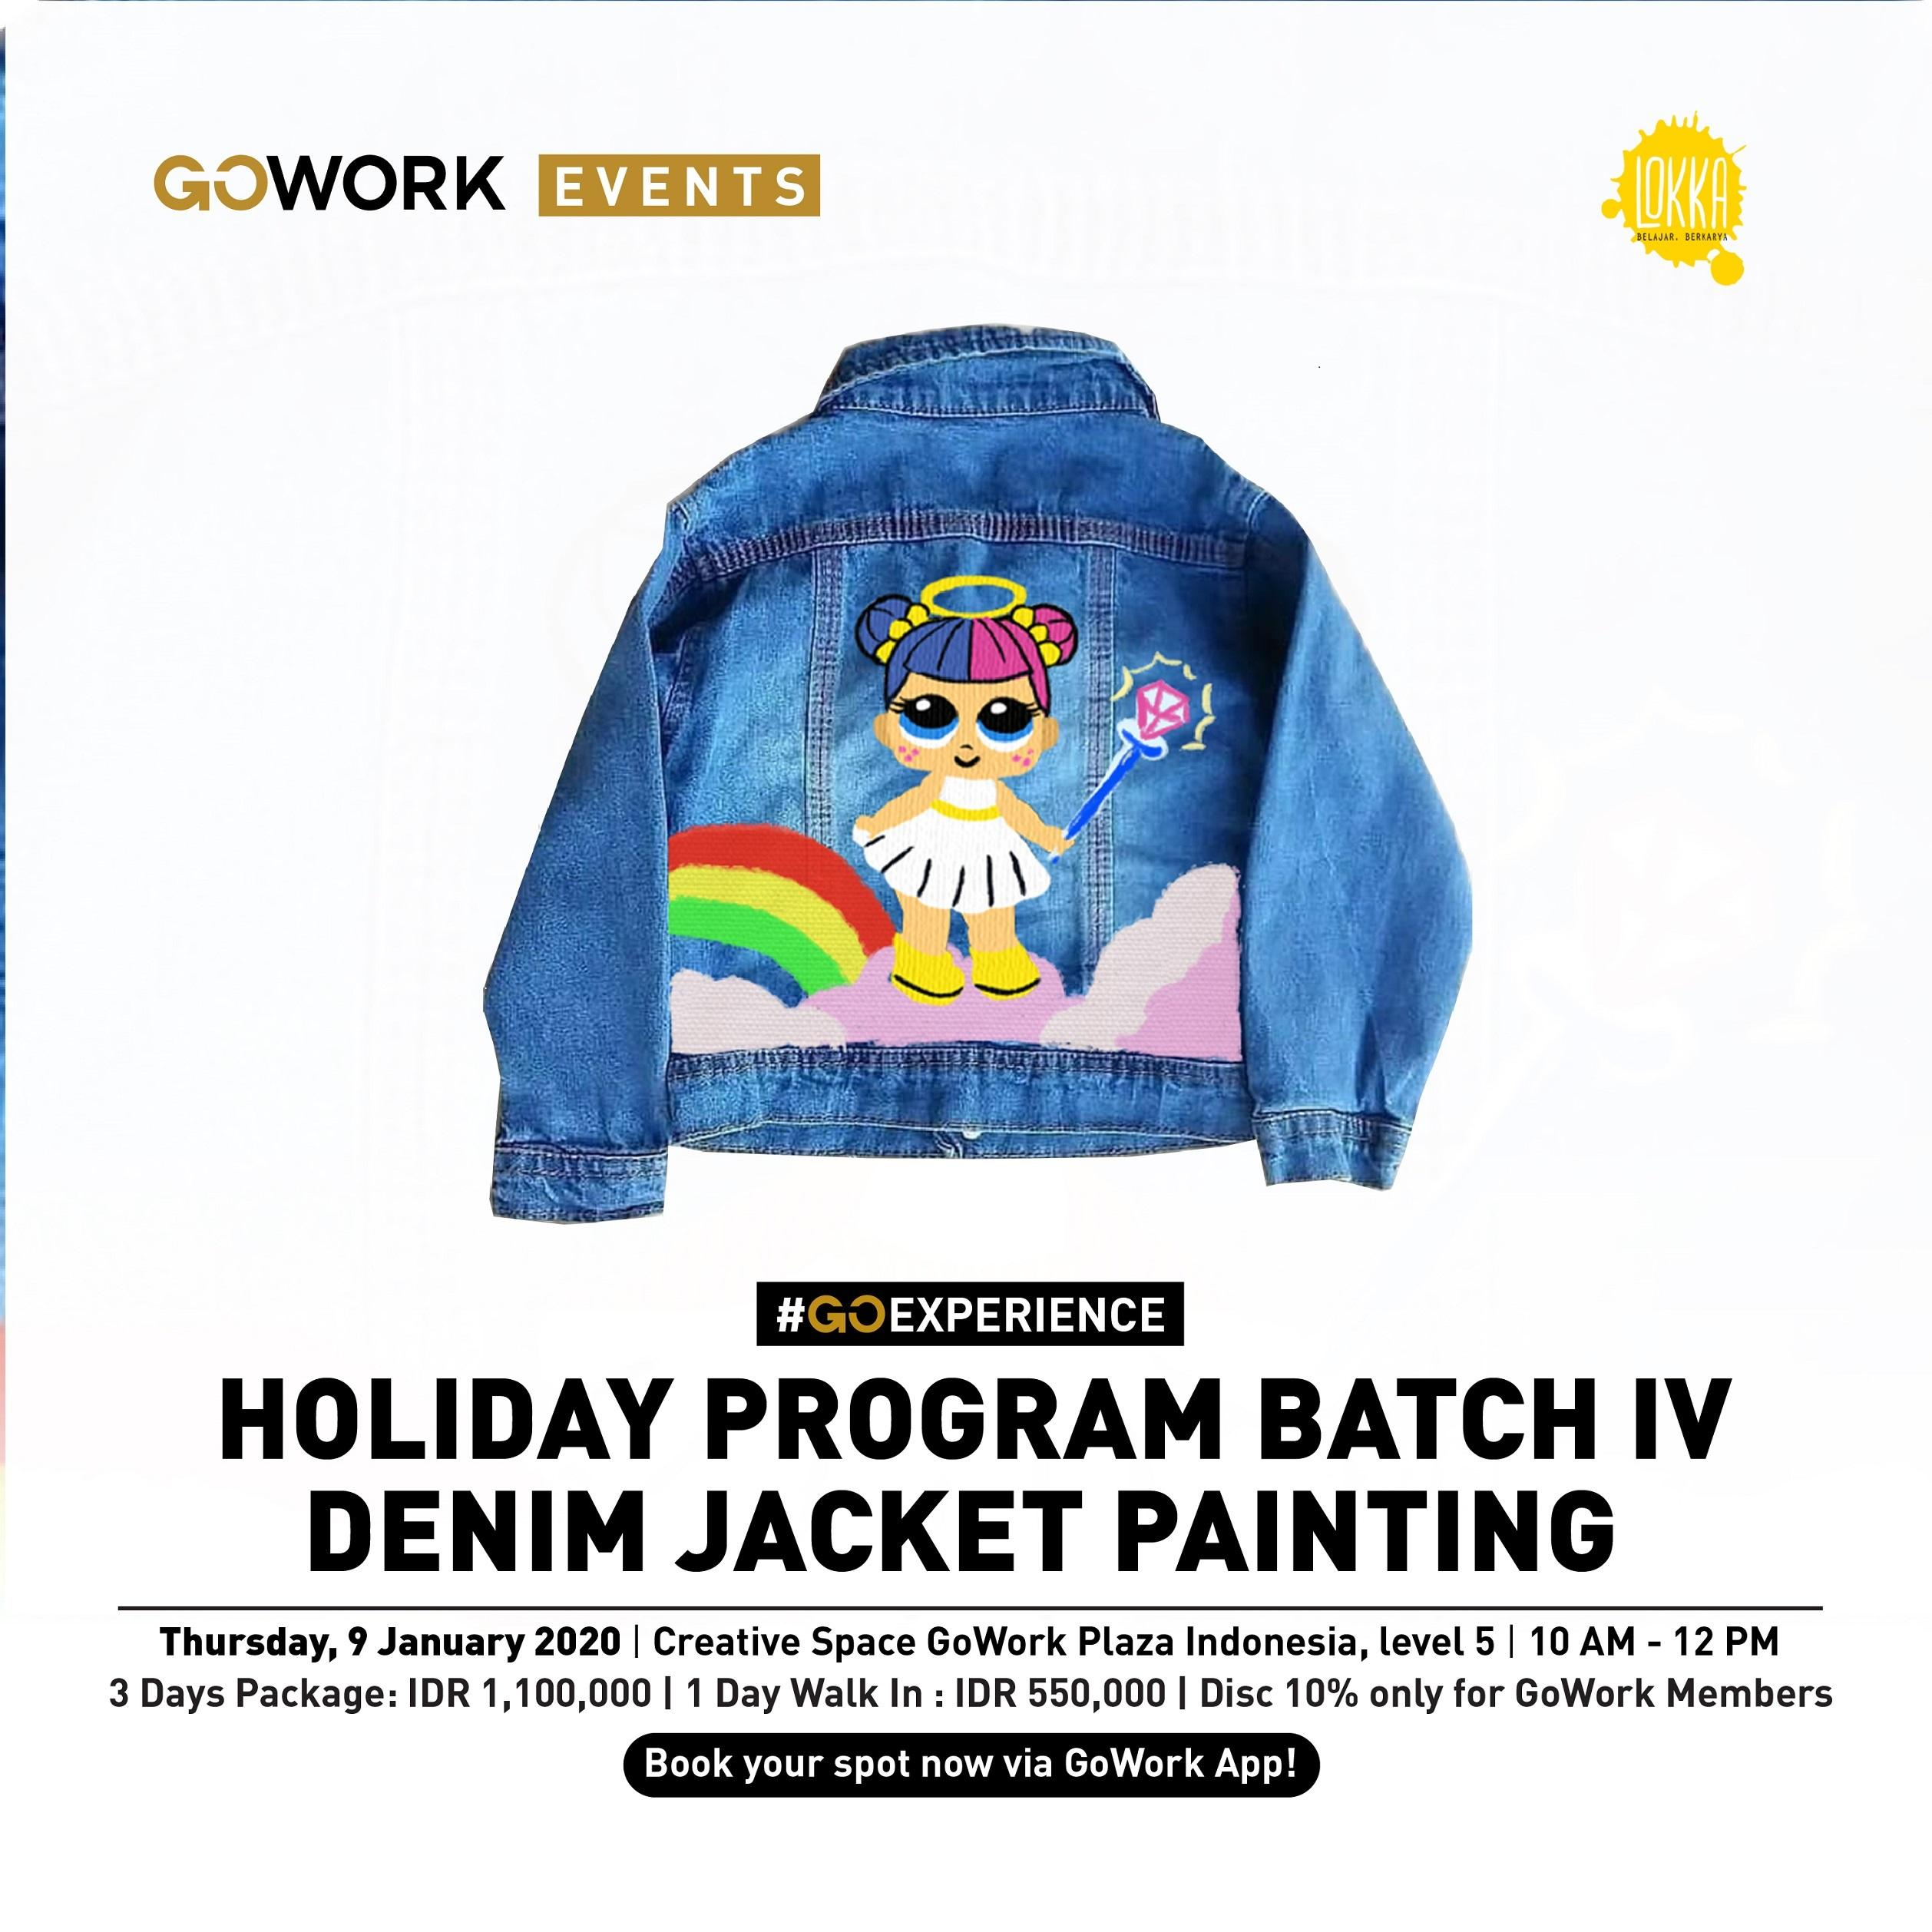 Lokka Holiday Program Batch IV : Denim Jacket Painting